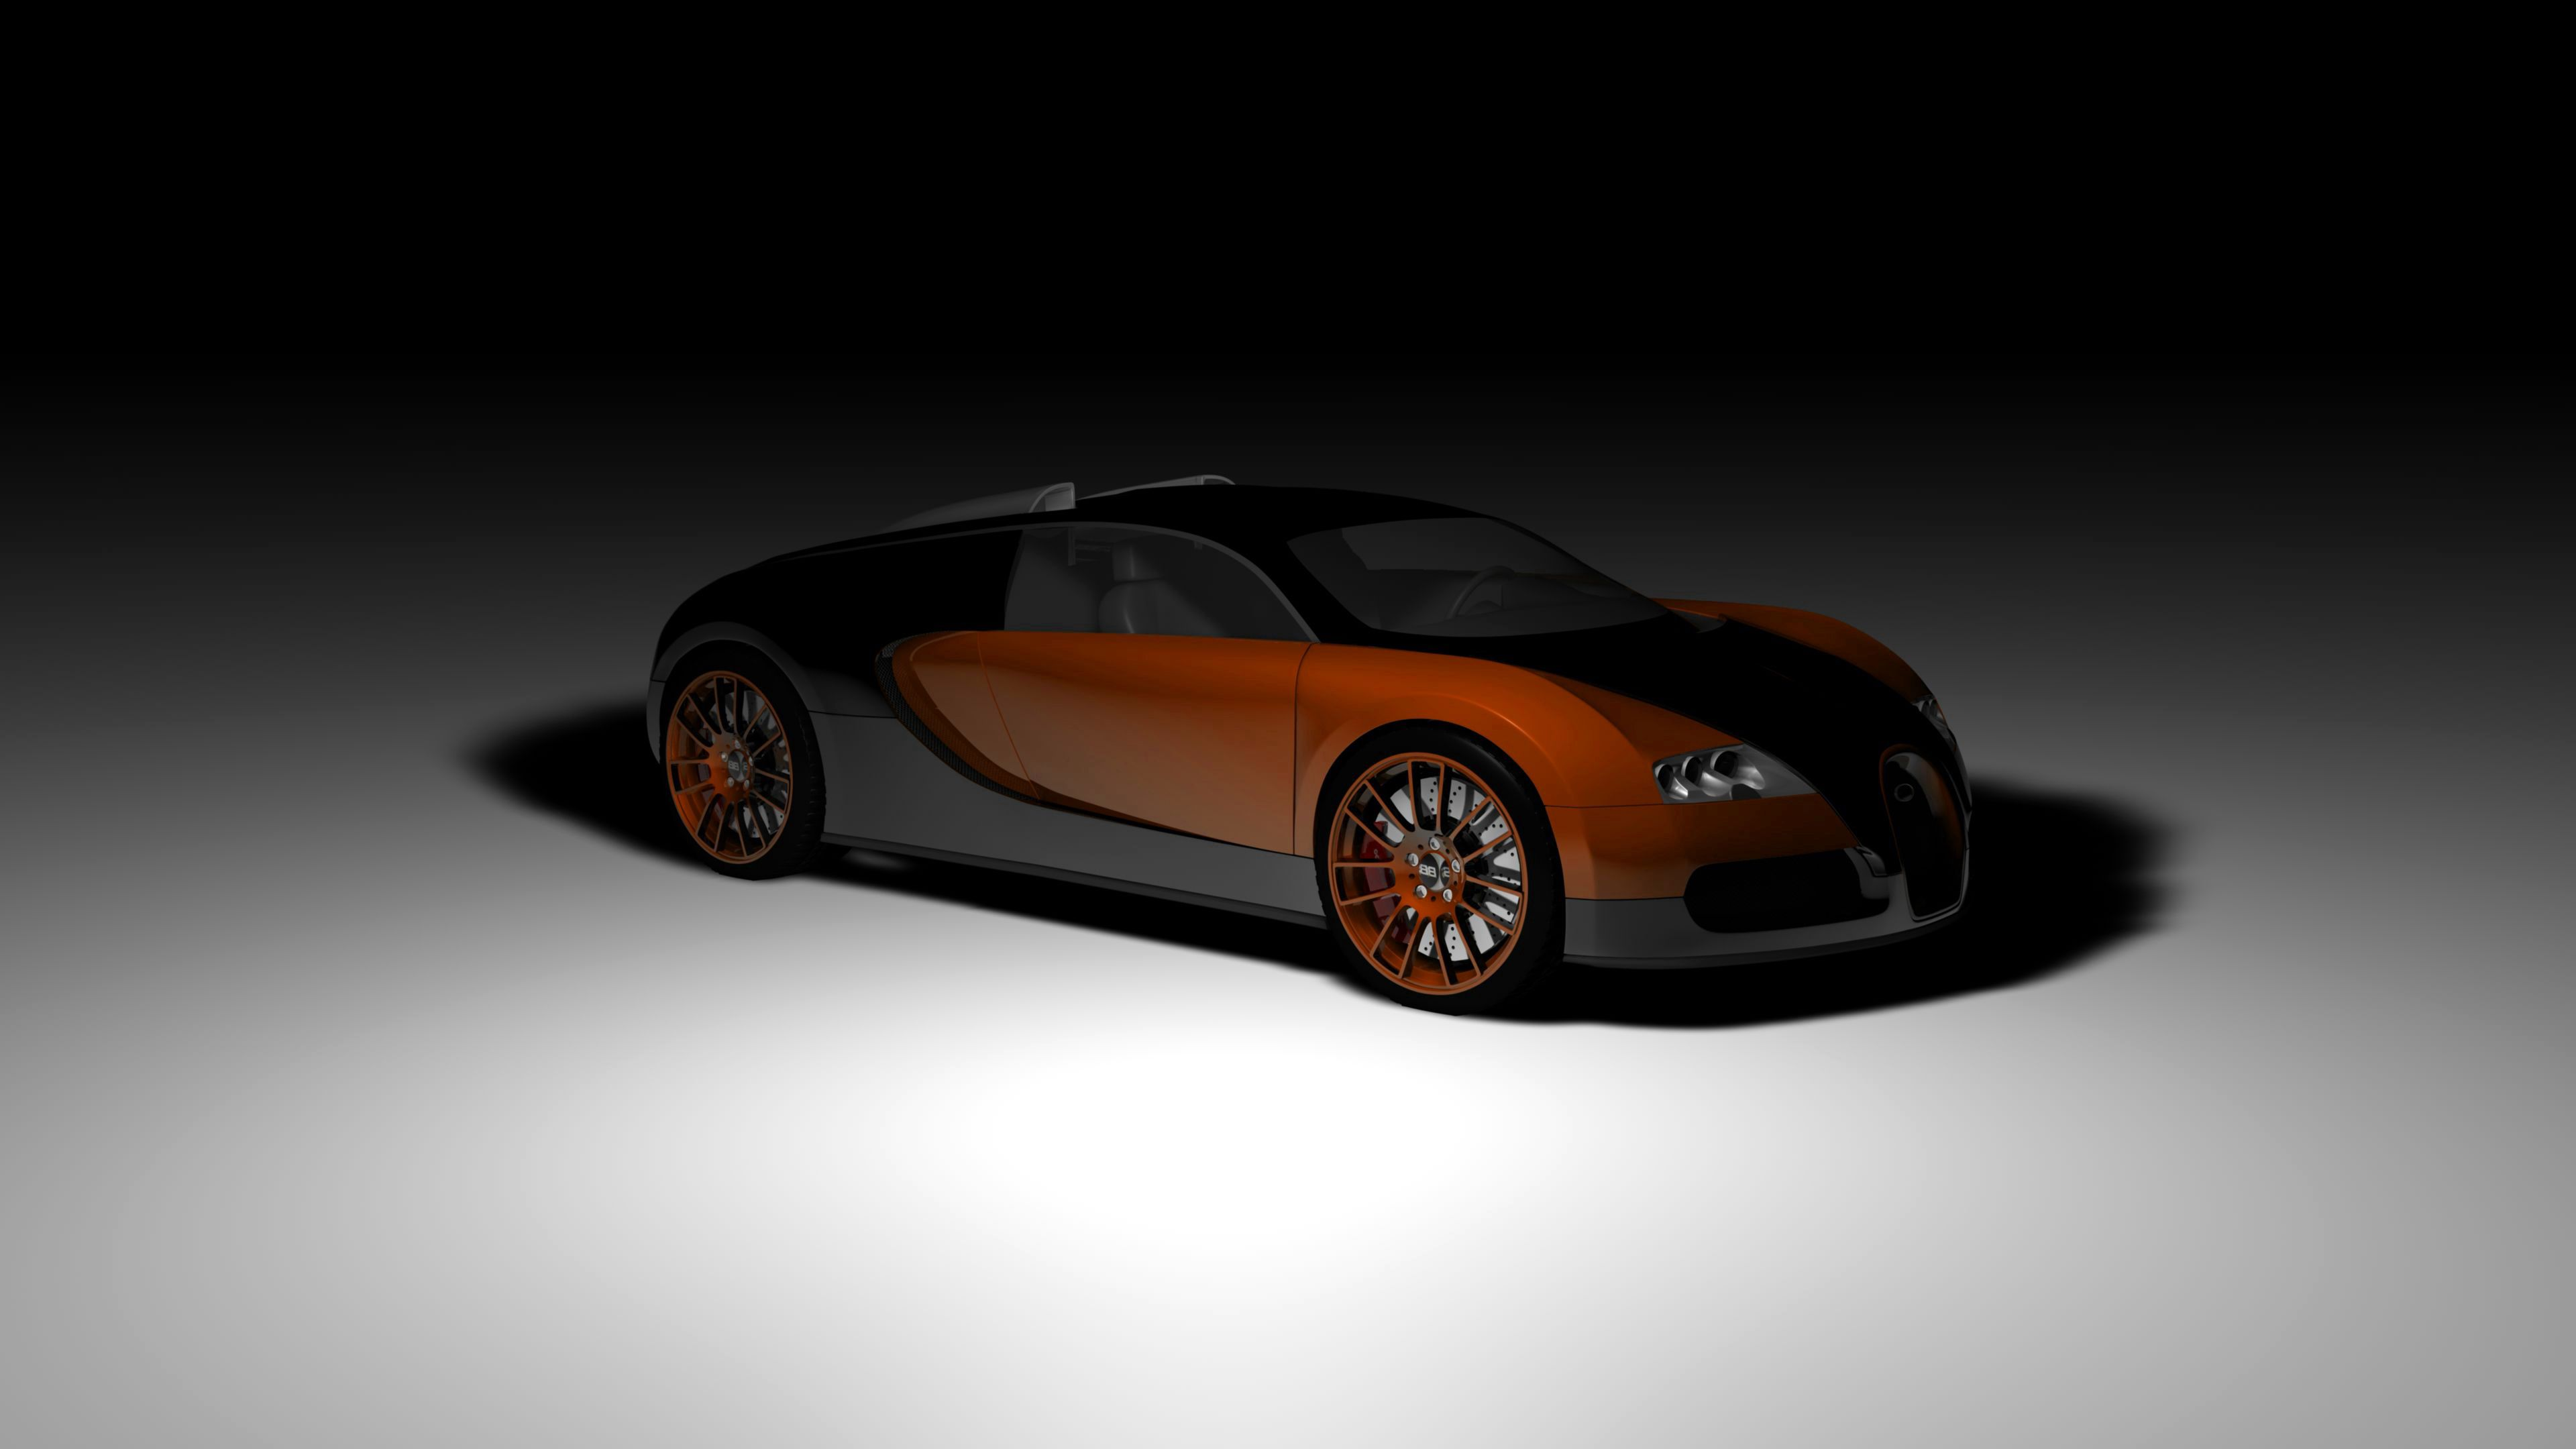 70519 download wallpaper Cars, Bugatti, Veyron, Concept, Auto, Side View, Shadow screensavers and pictures for free